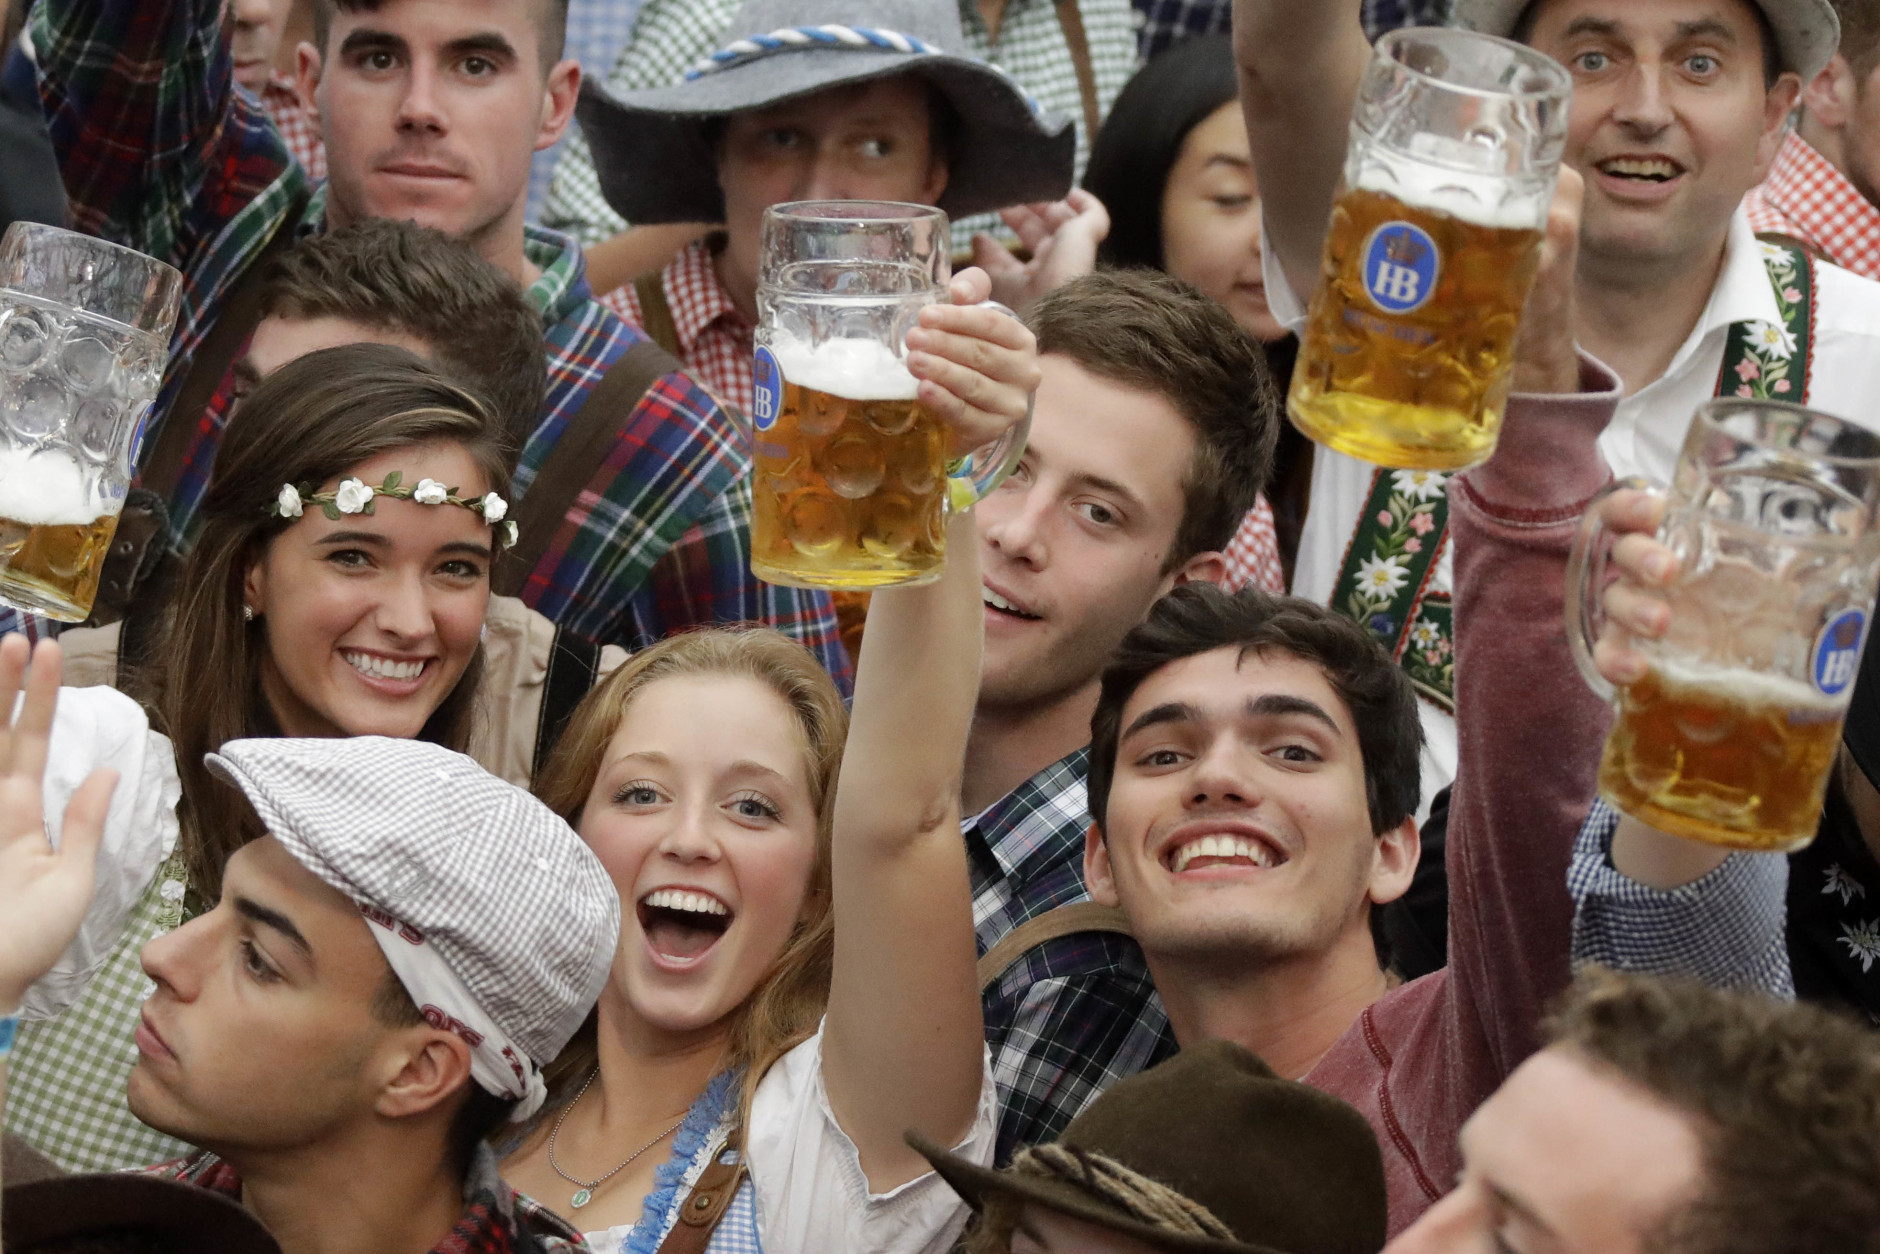 Young people celebrate the opening of the 183rd Oktoberfest beer festival in Munich, southern Germany, Saturday, Sept. 17, 2016. The world's largest beer festival will be held from Sept. 17 to Oct. 3, 2016. (AP Photo/Matthias Schrader)